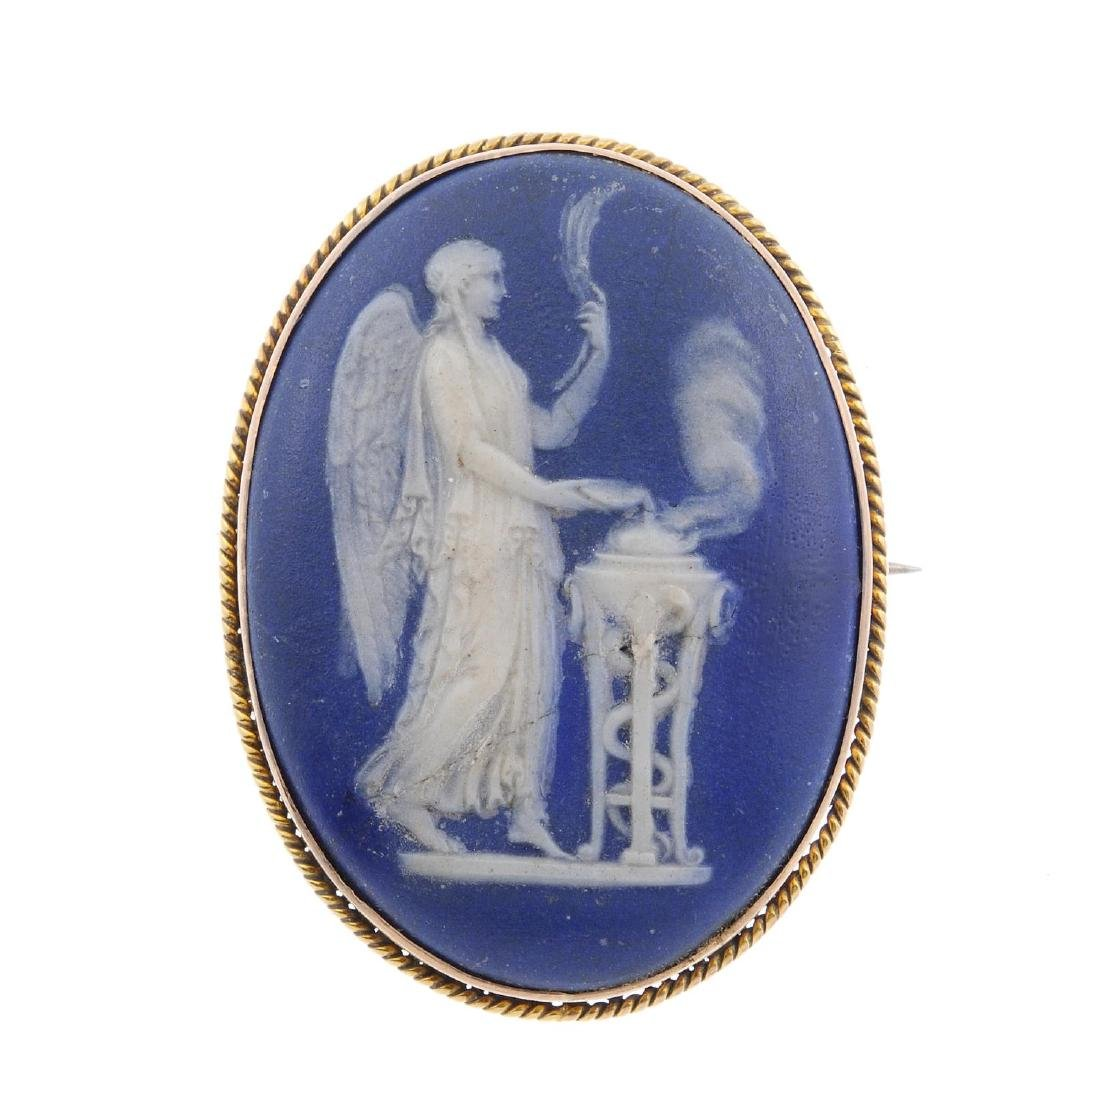 WEDGWOOD - a cameo brooch. Of oval outline, the blue